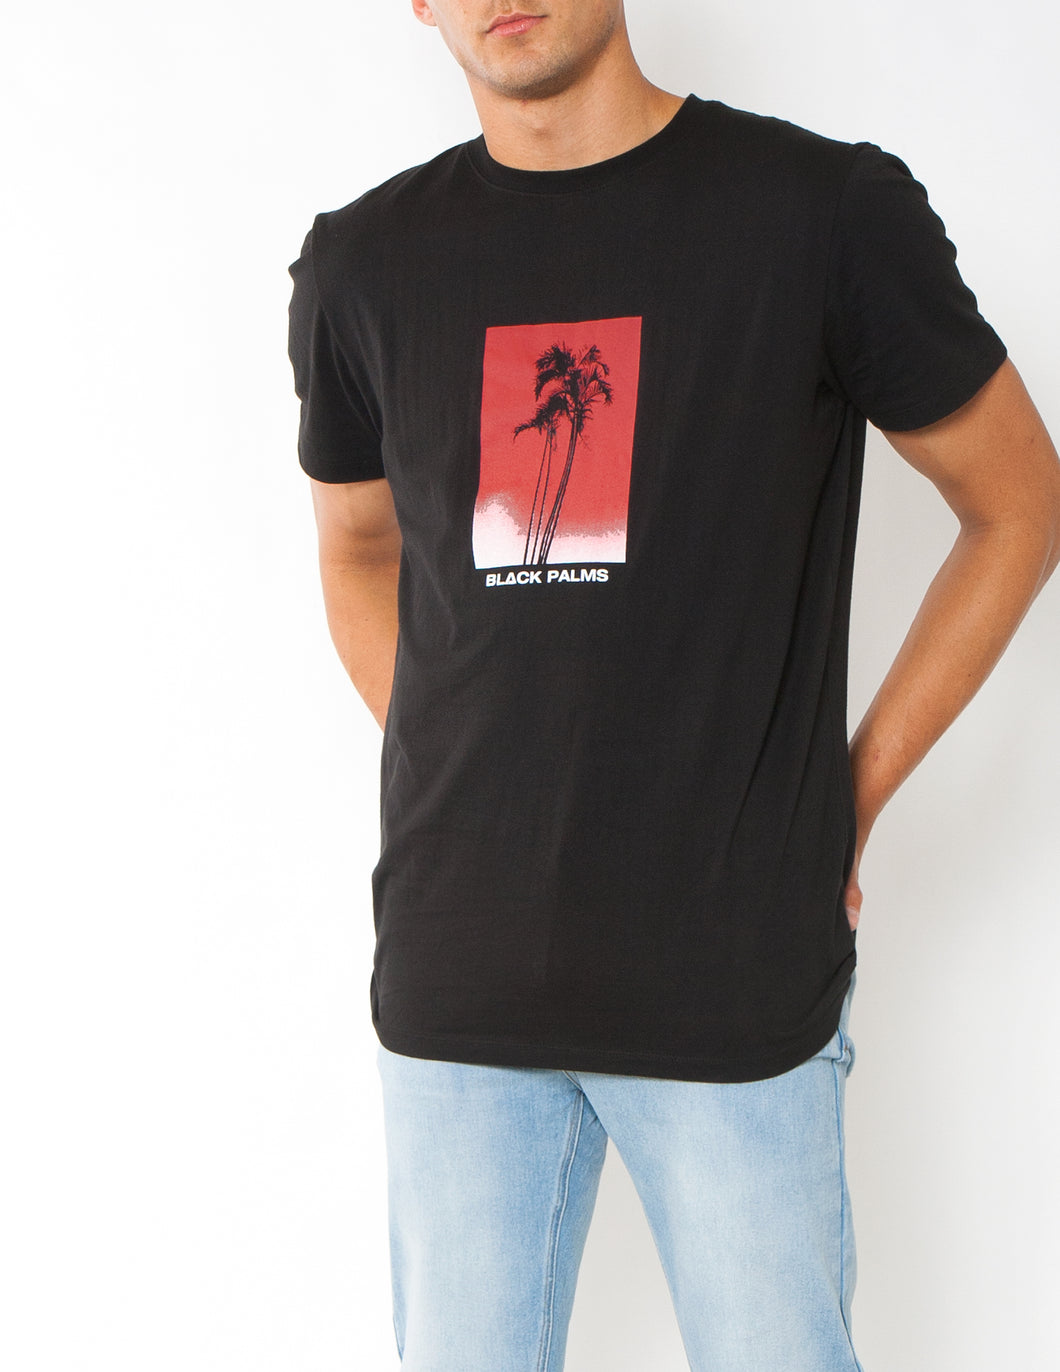 THE SUNSET PALM TEE - BLACK W RED - Black palms mens black tee with cool palm tree graphic on the front black palms